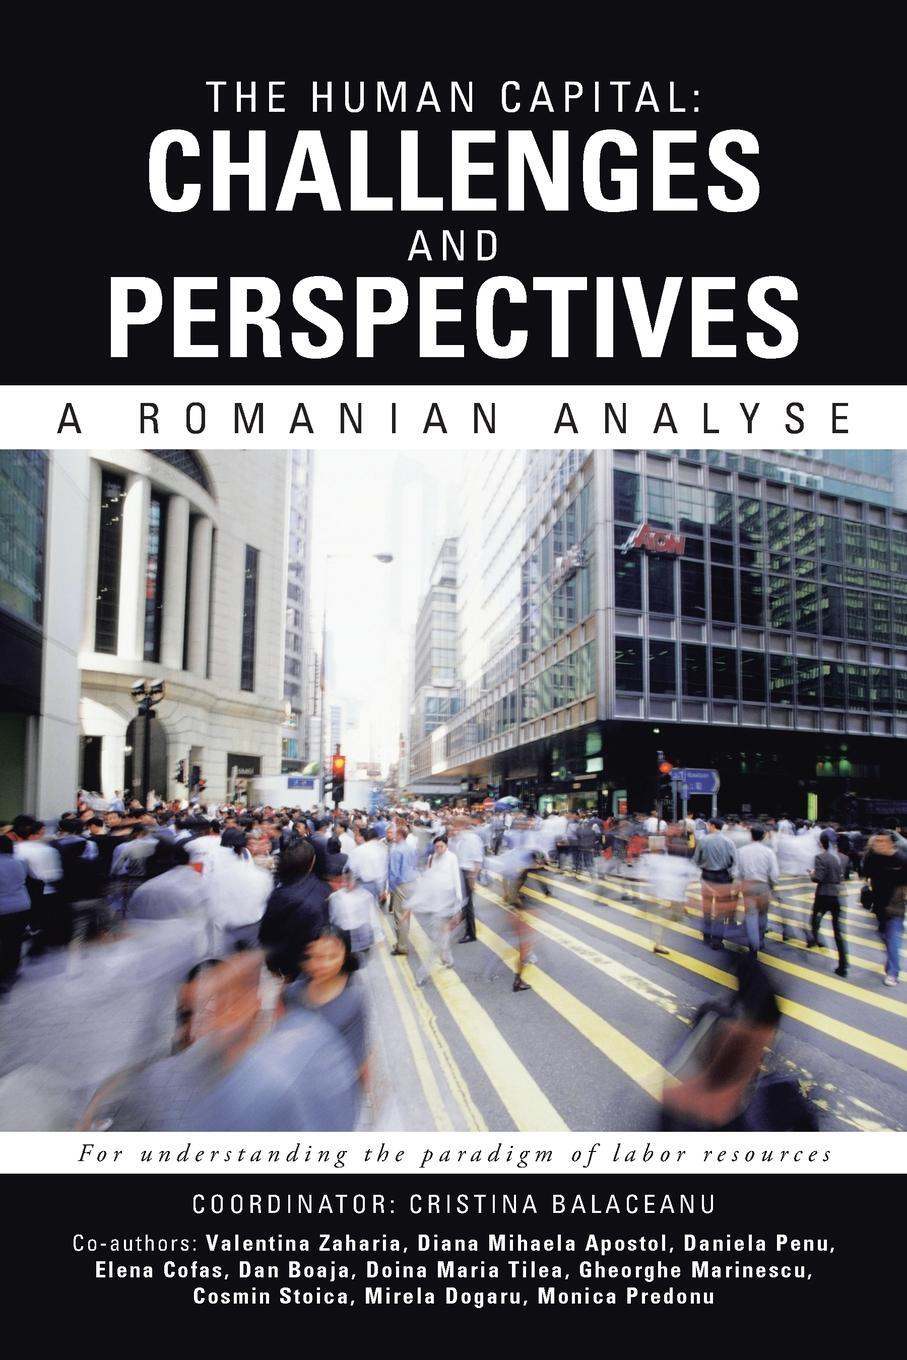 The Human Capital. Challenges and Perspectives: A Romanian Analyse